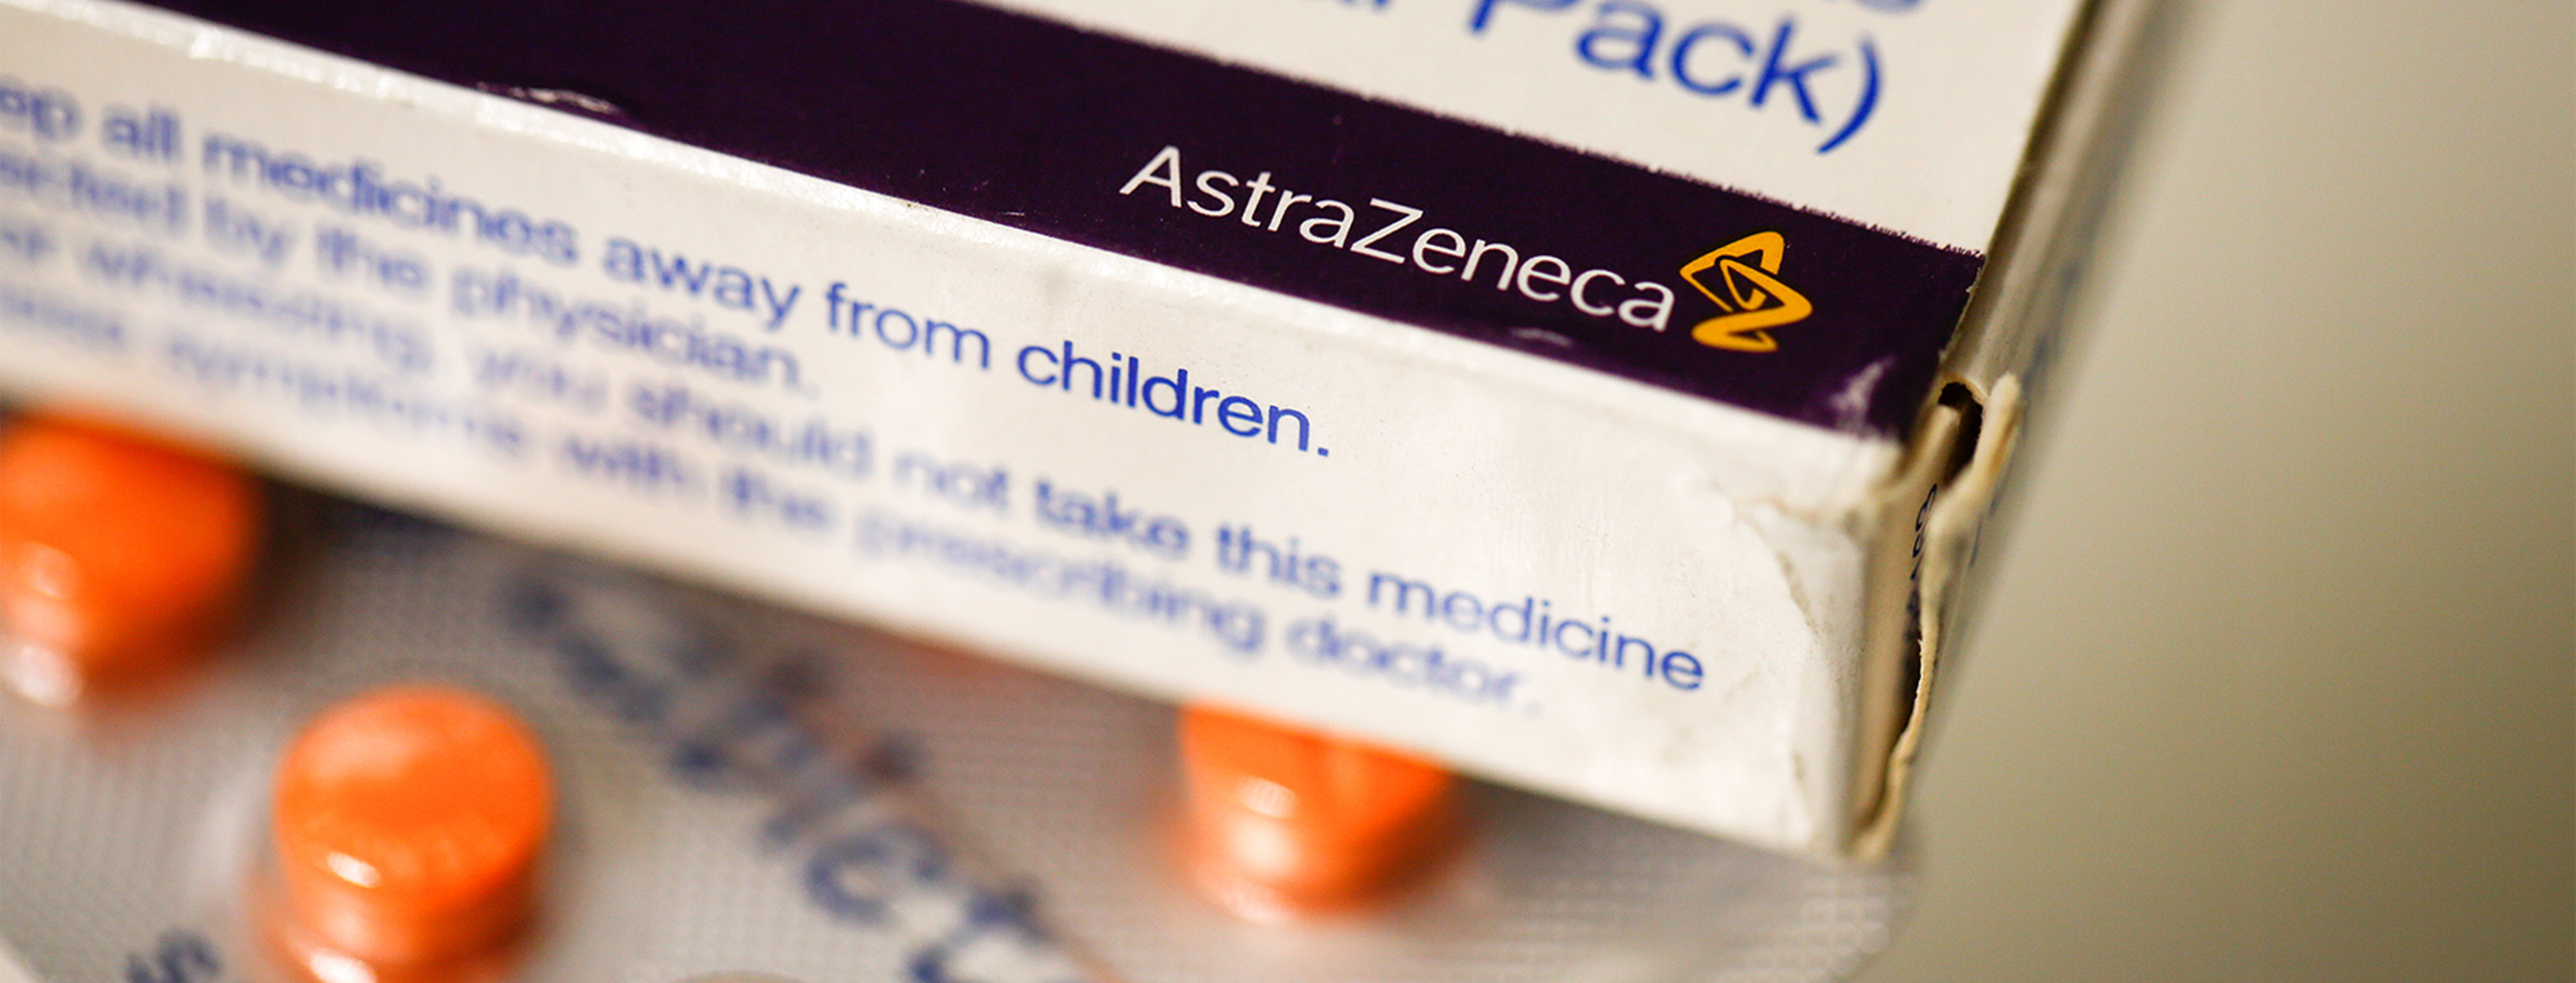 AstraZeneca Tablets At A Pharmacists As Company Explores Deal With Acerta Pharma